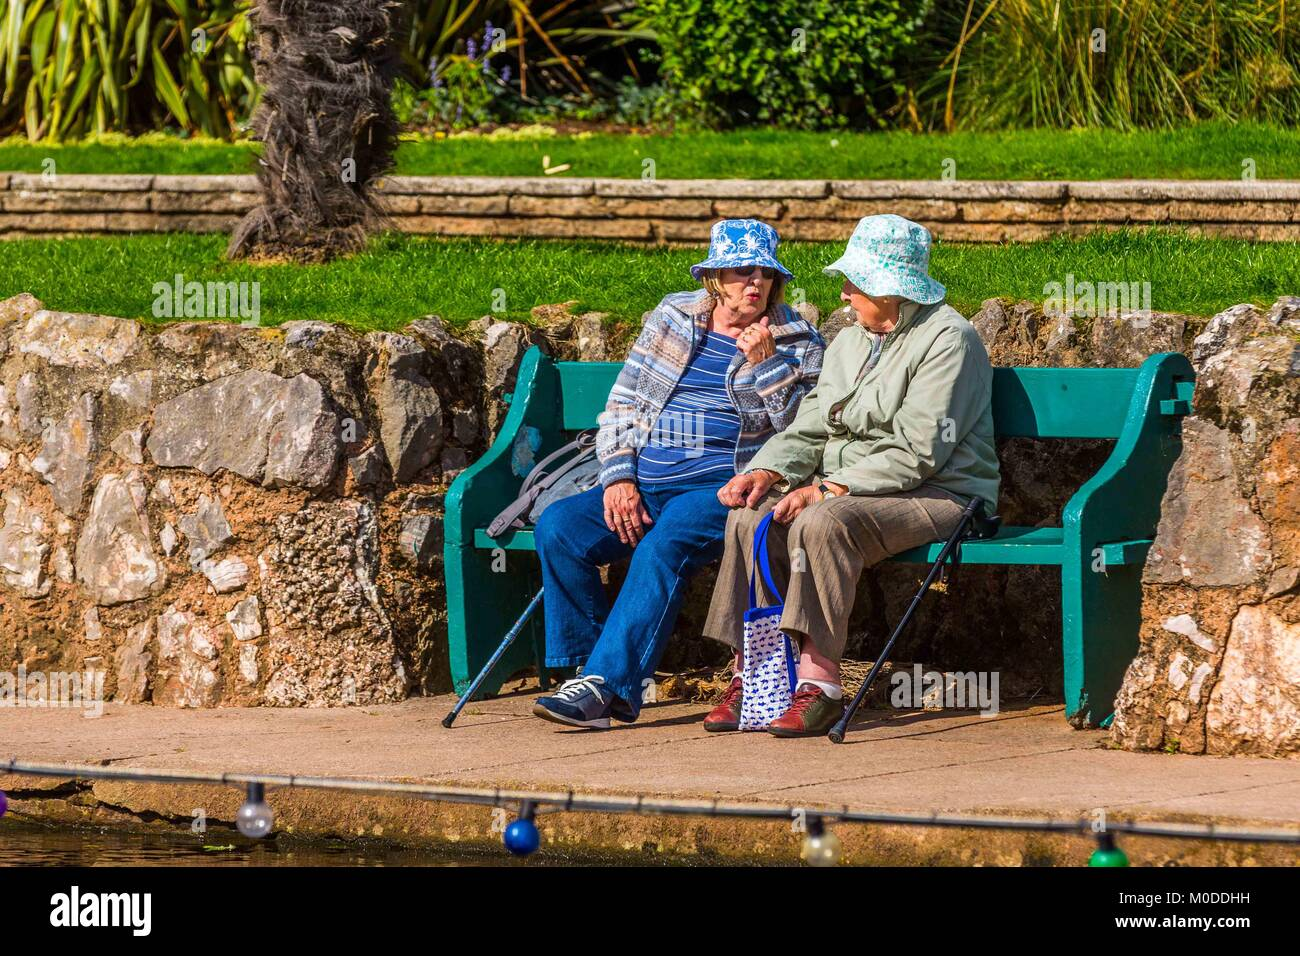 Two women friends chat together on a garden or park bench. - Stock Image